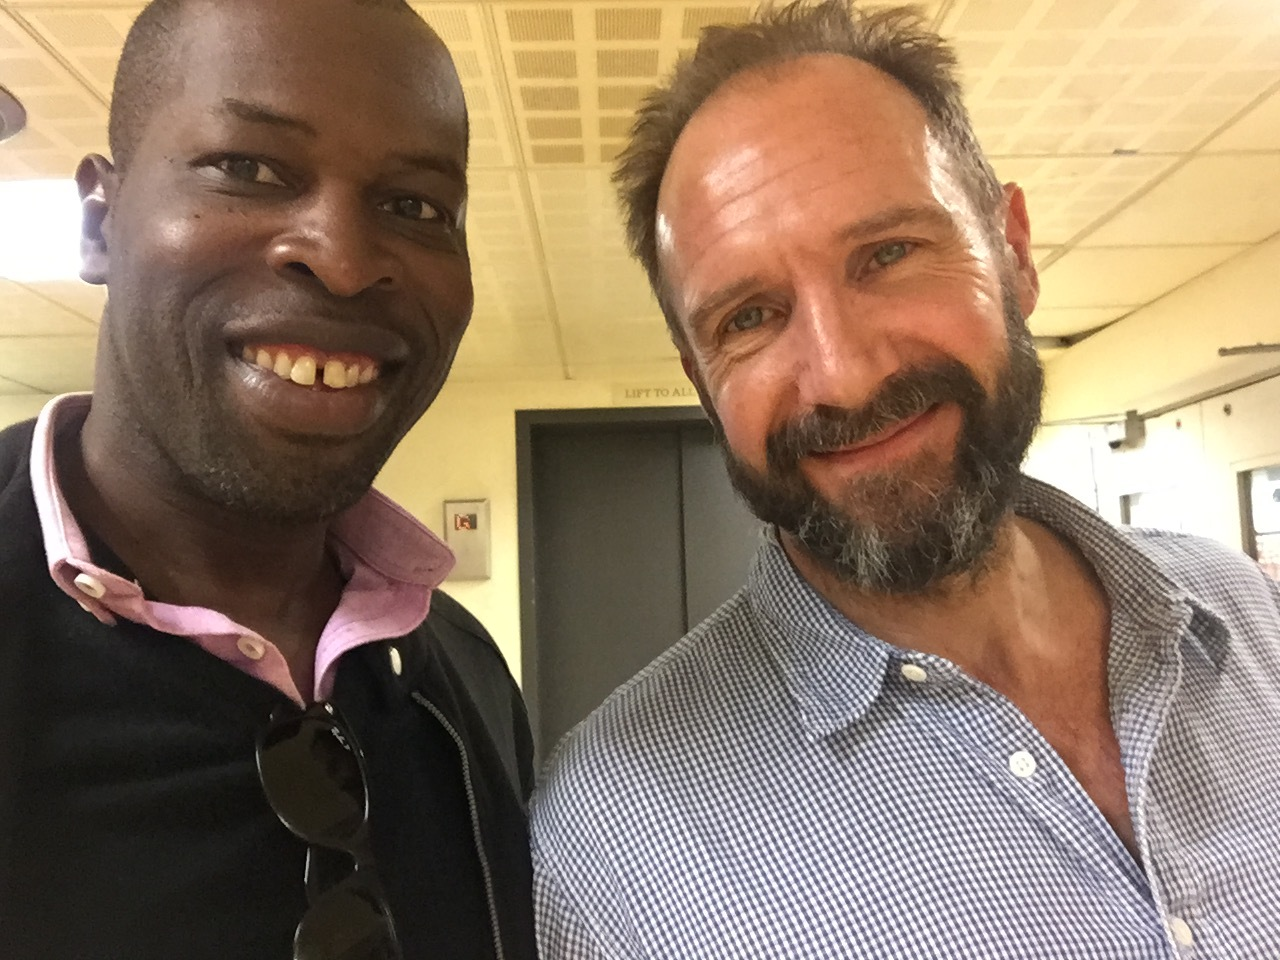 SEPTEMBER  Meeting with Ralph Fienes in the corridor of The National Theatre.   Ralph performing in  Cleopatra  and me in  The Prisoner.